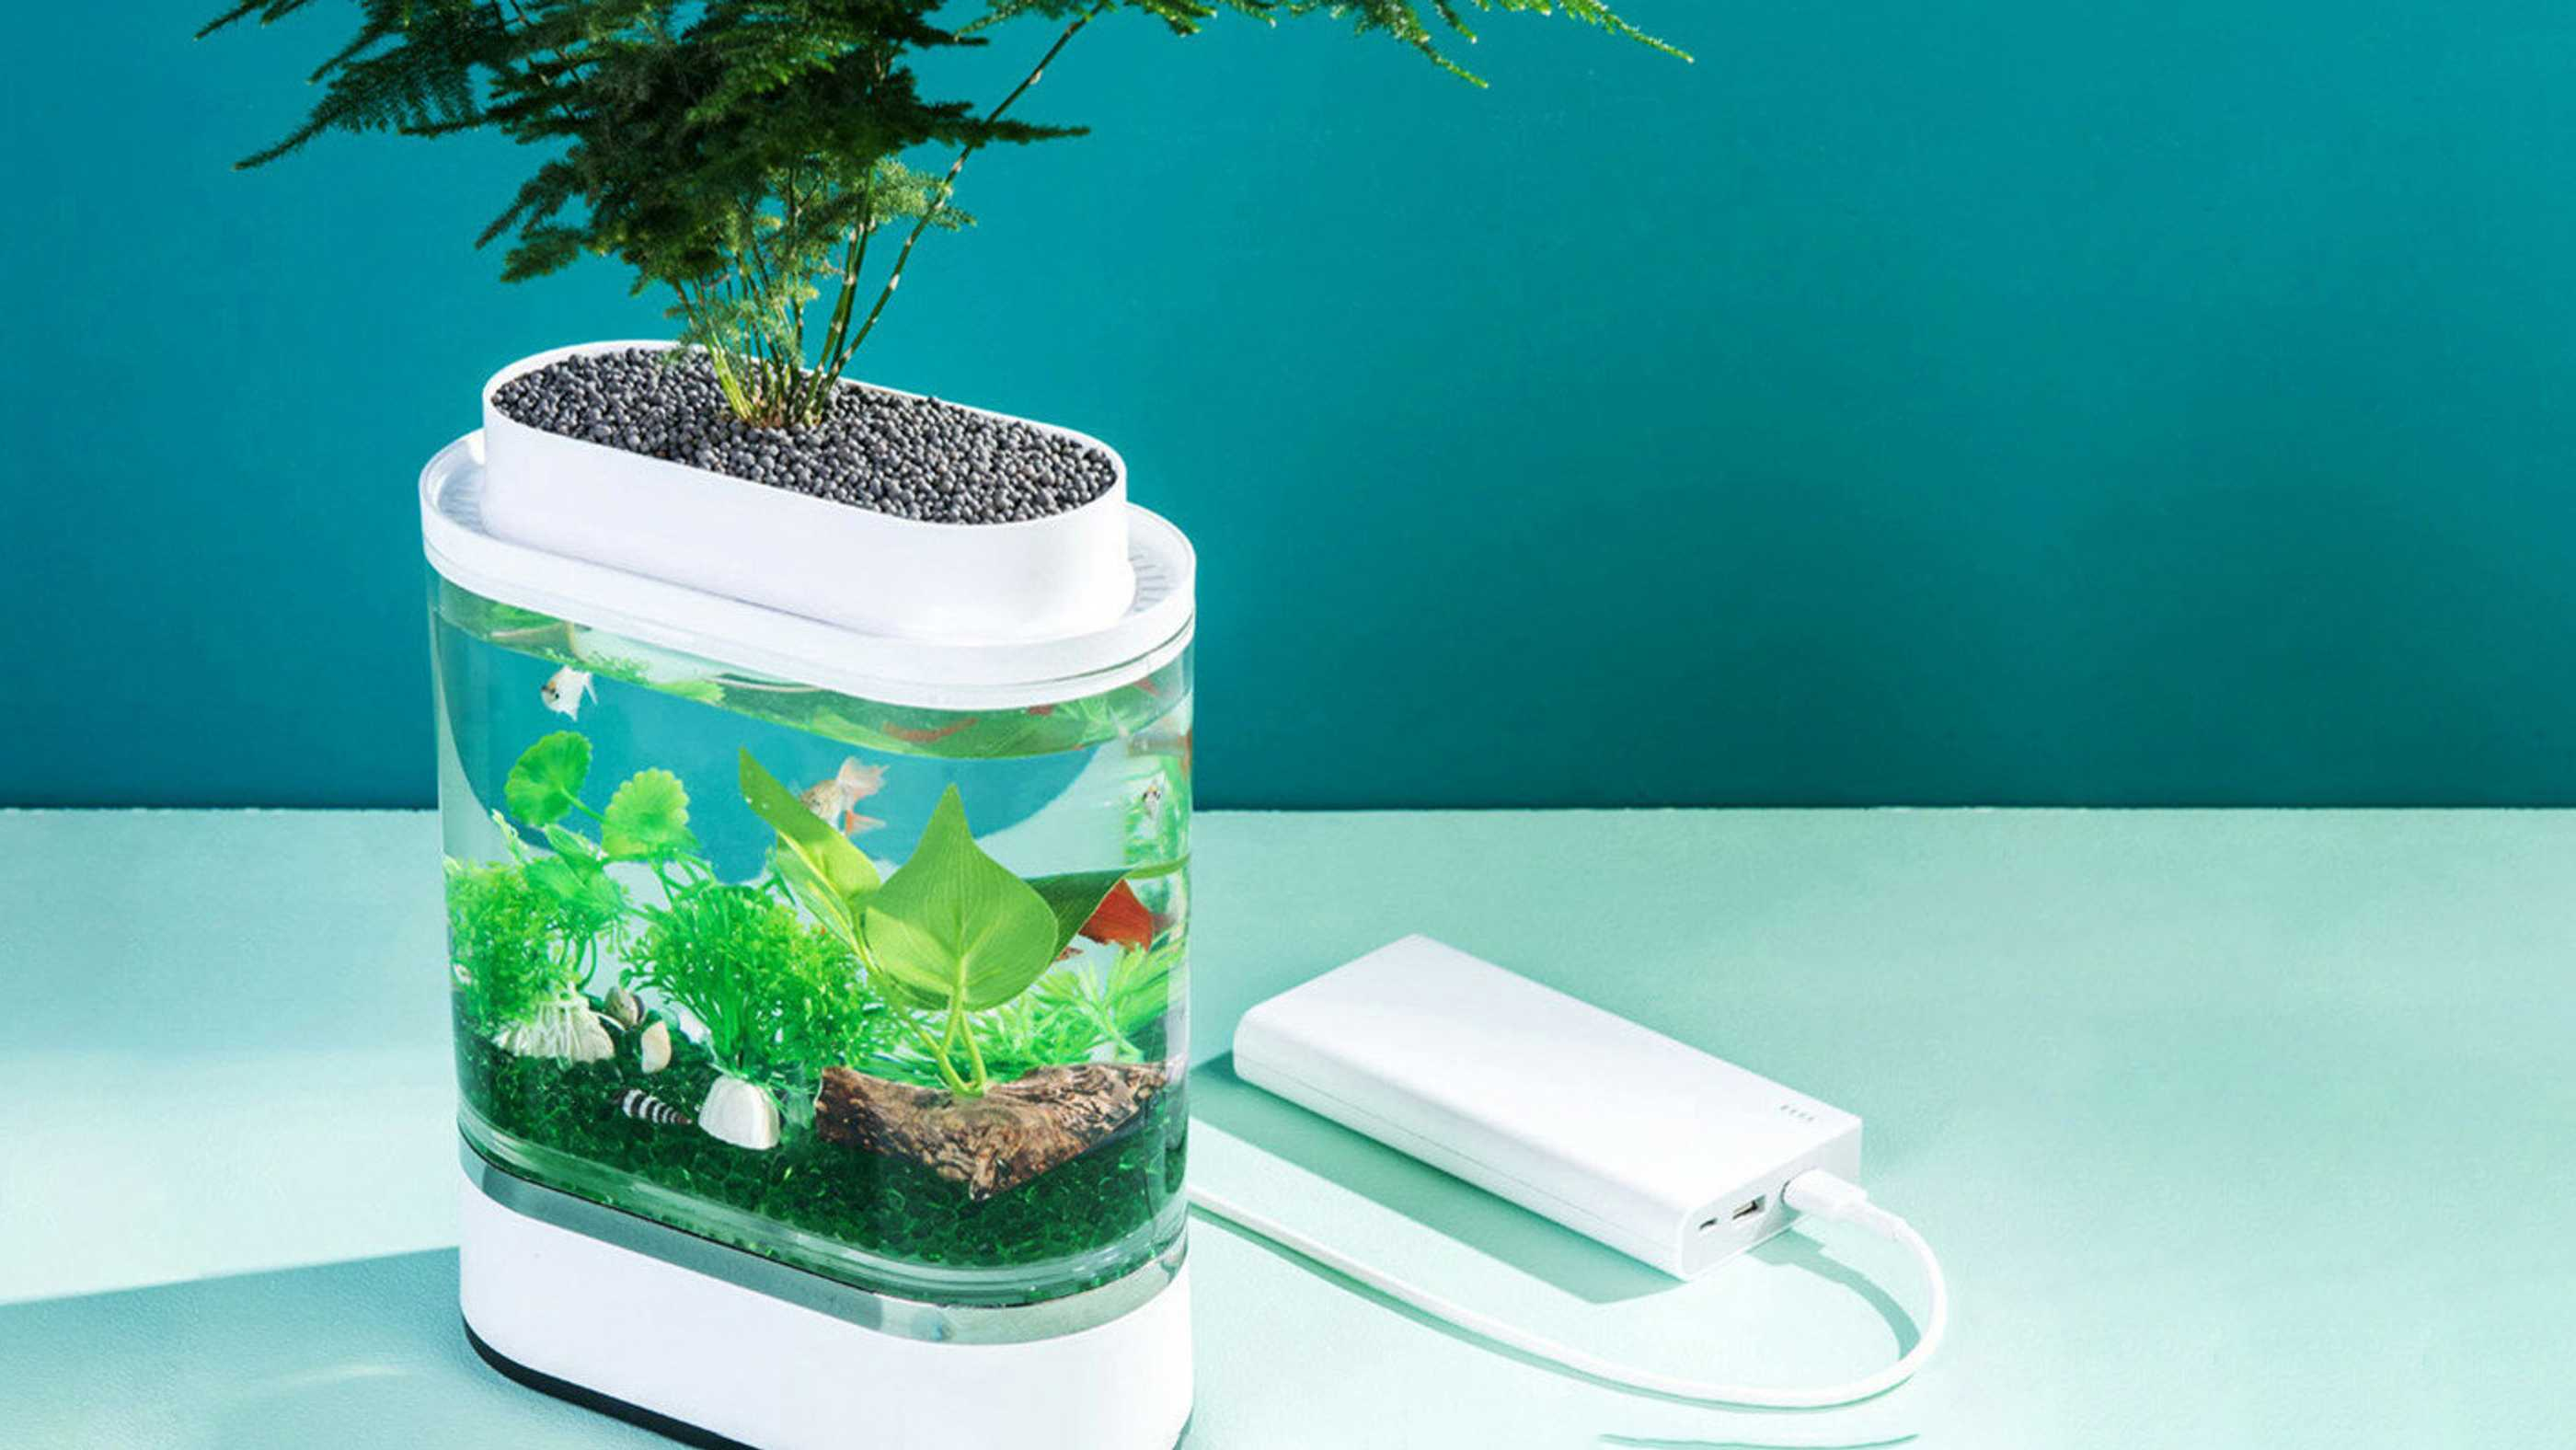 Geometry Smart Fish Tank Pro von Xiaomi